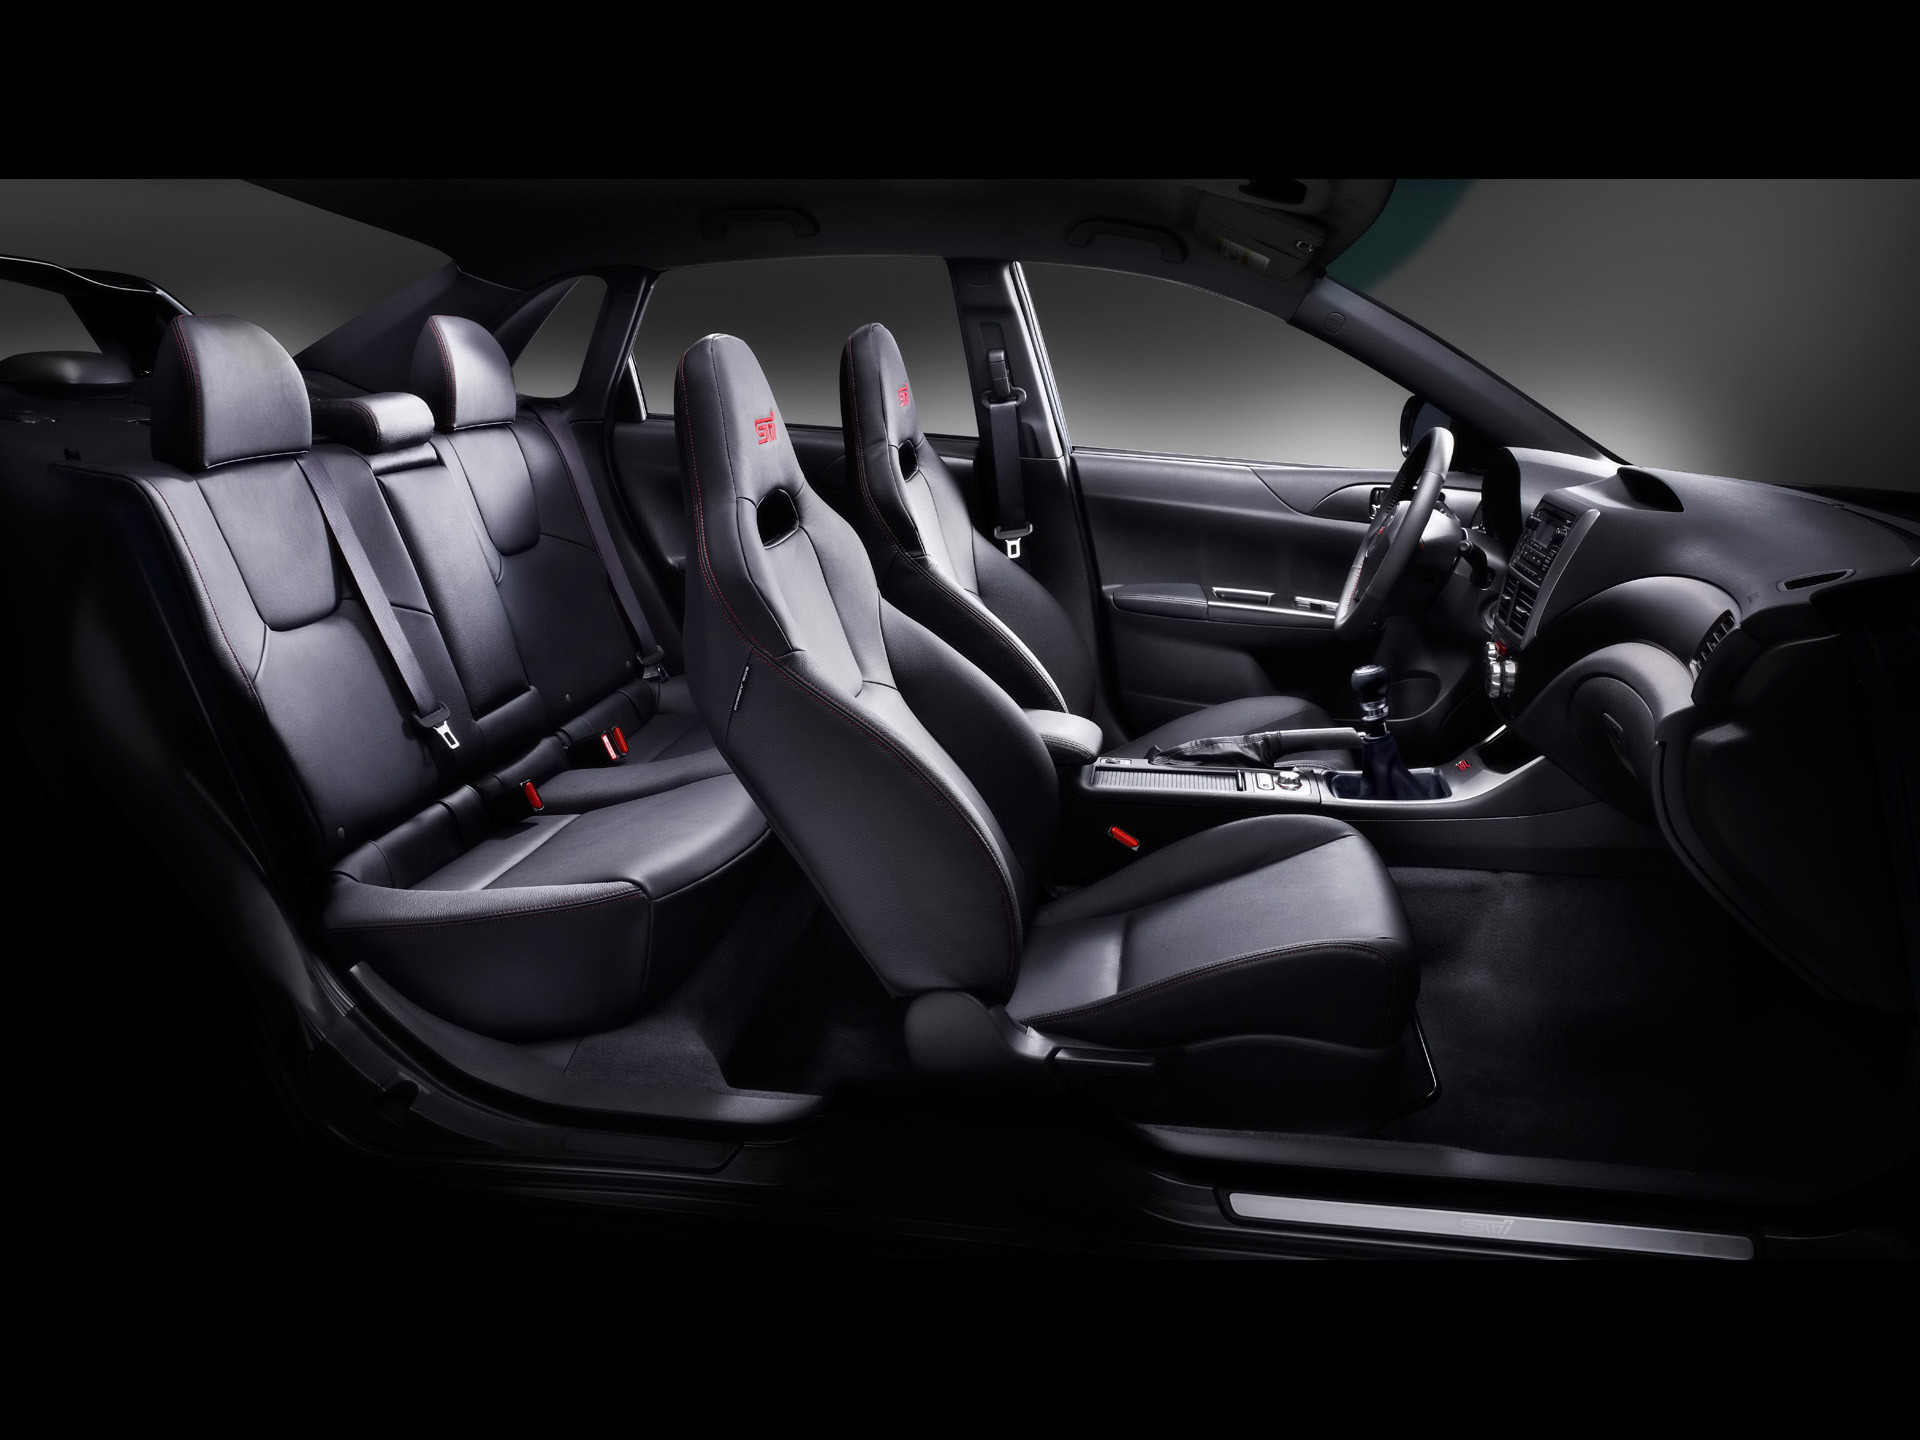 2011 Subaru Impreza WRX STI – 4 door Interior 2 – – Wallpaper